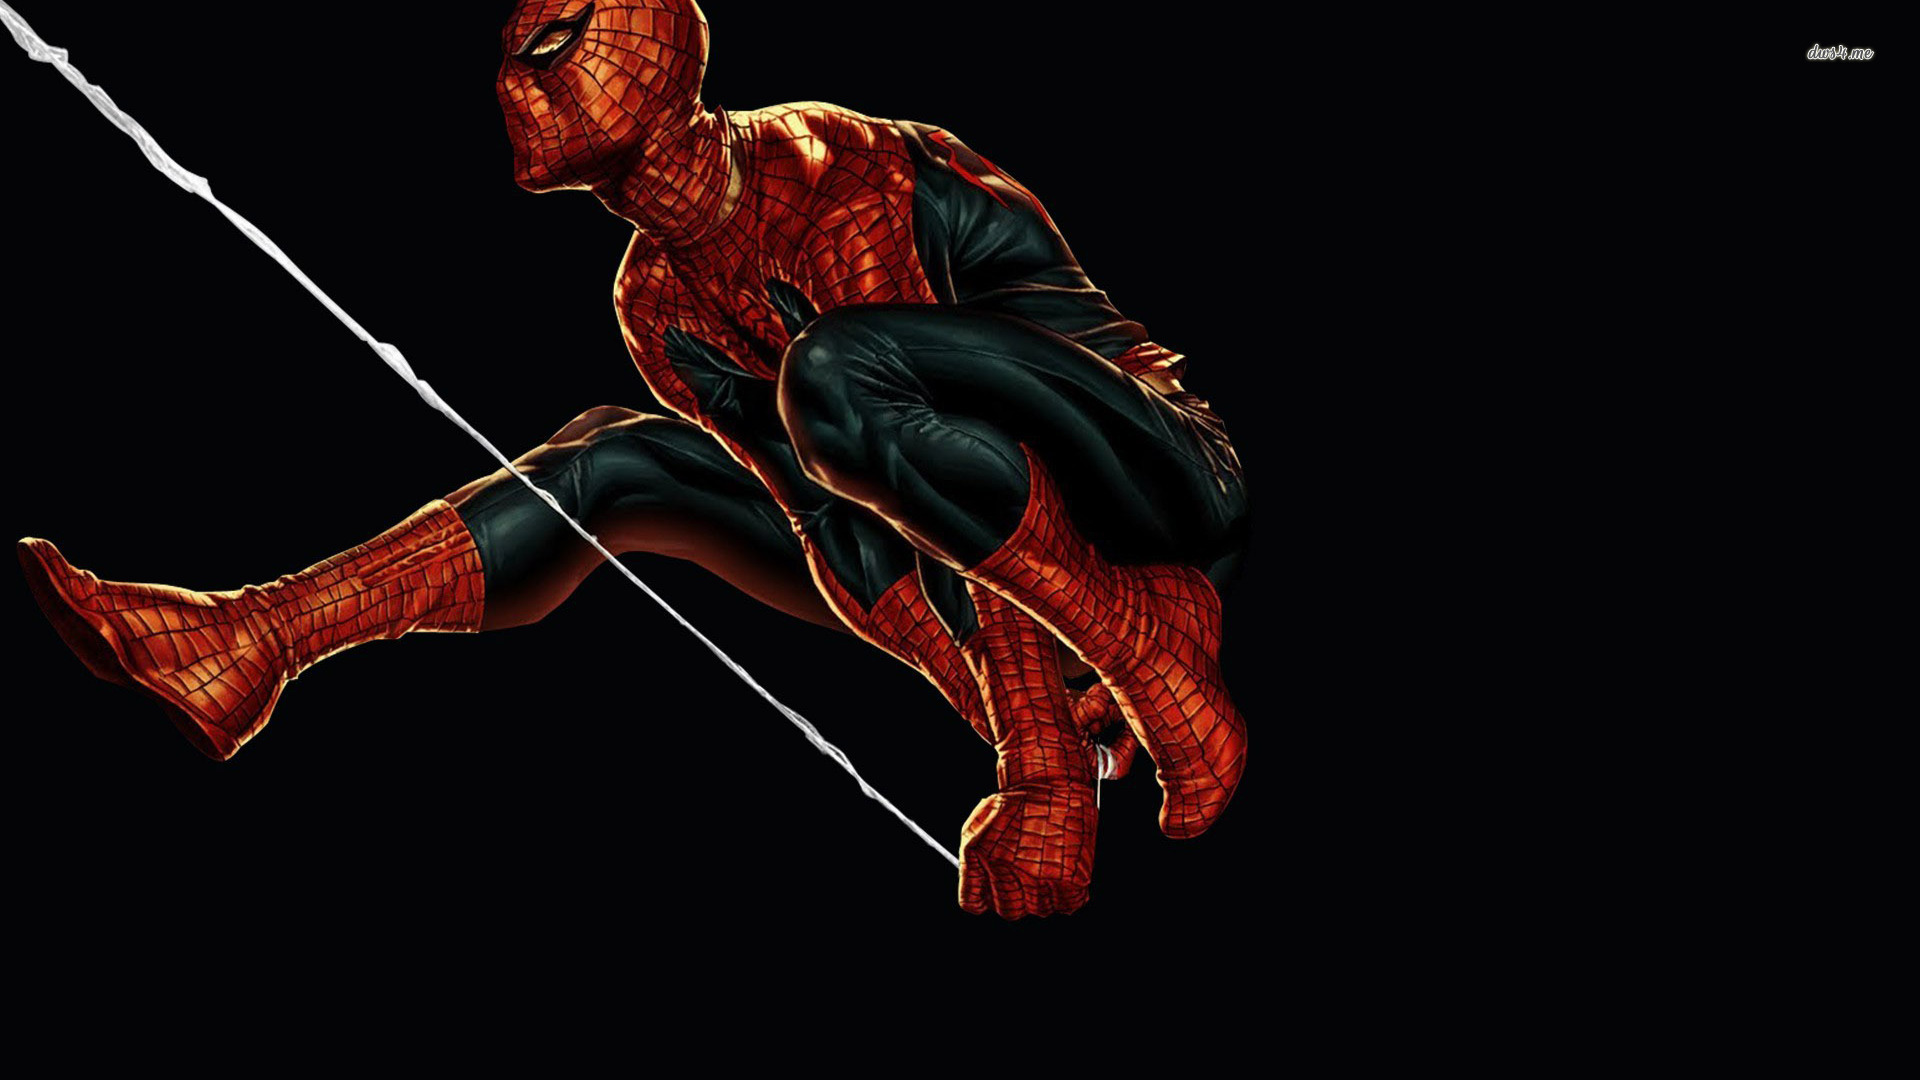 Spiderman wallpaper. Spiderman HD wallpapers